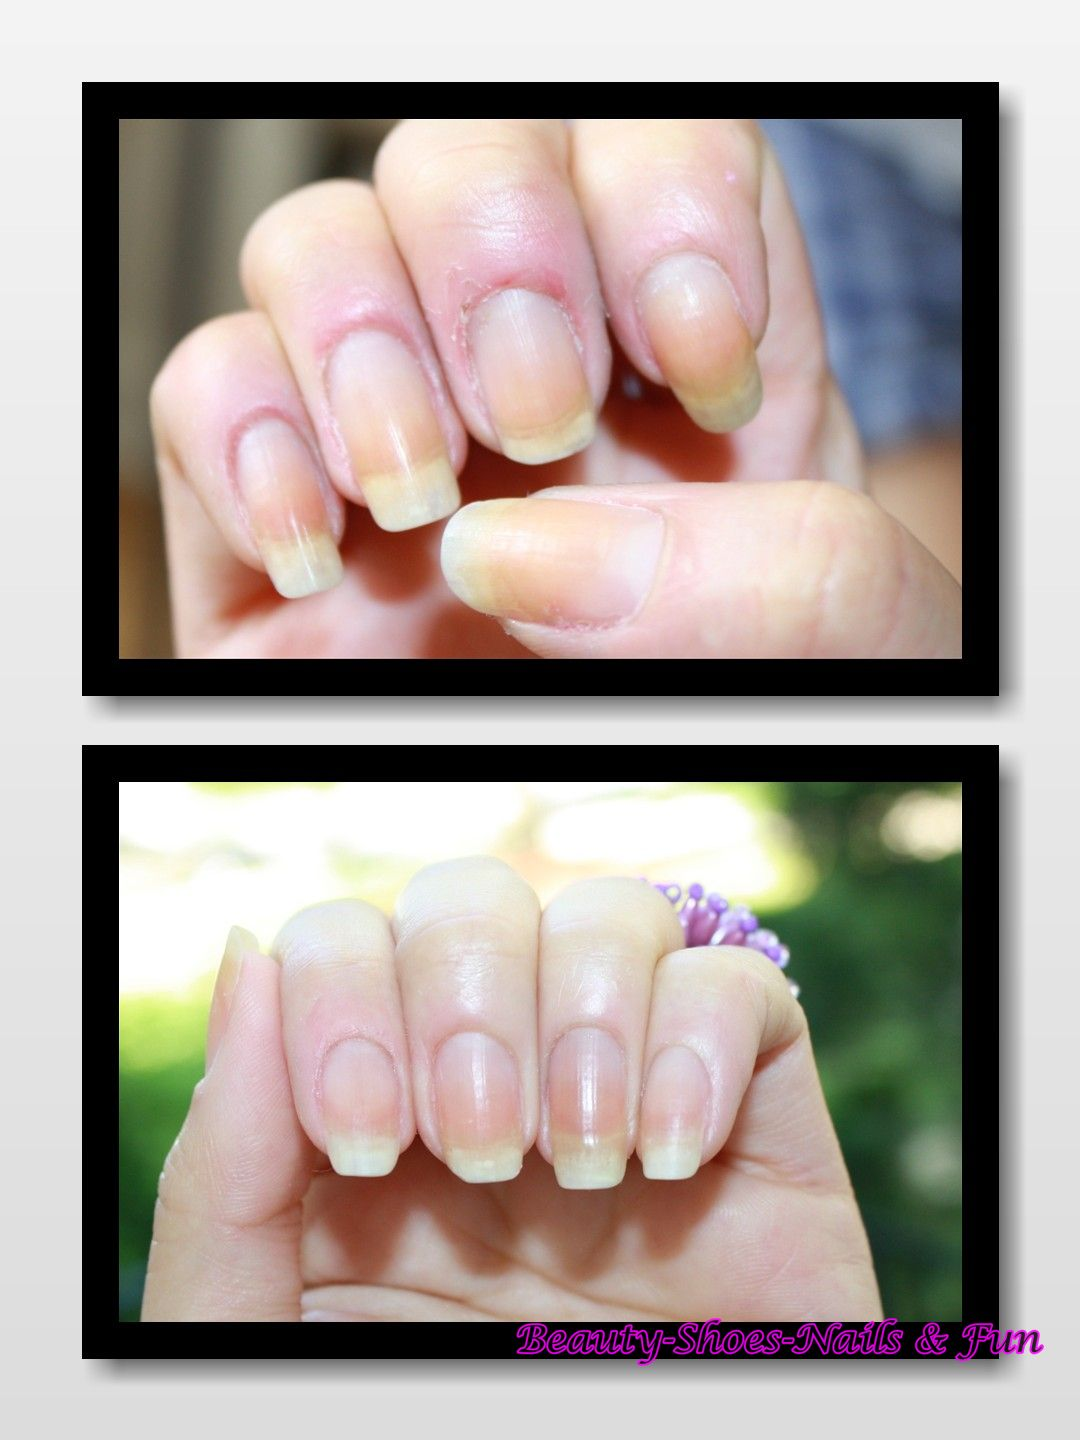 Beauty-Shoes-Nails-Fun: Pure : Cuticle Oil